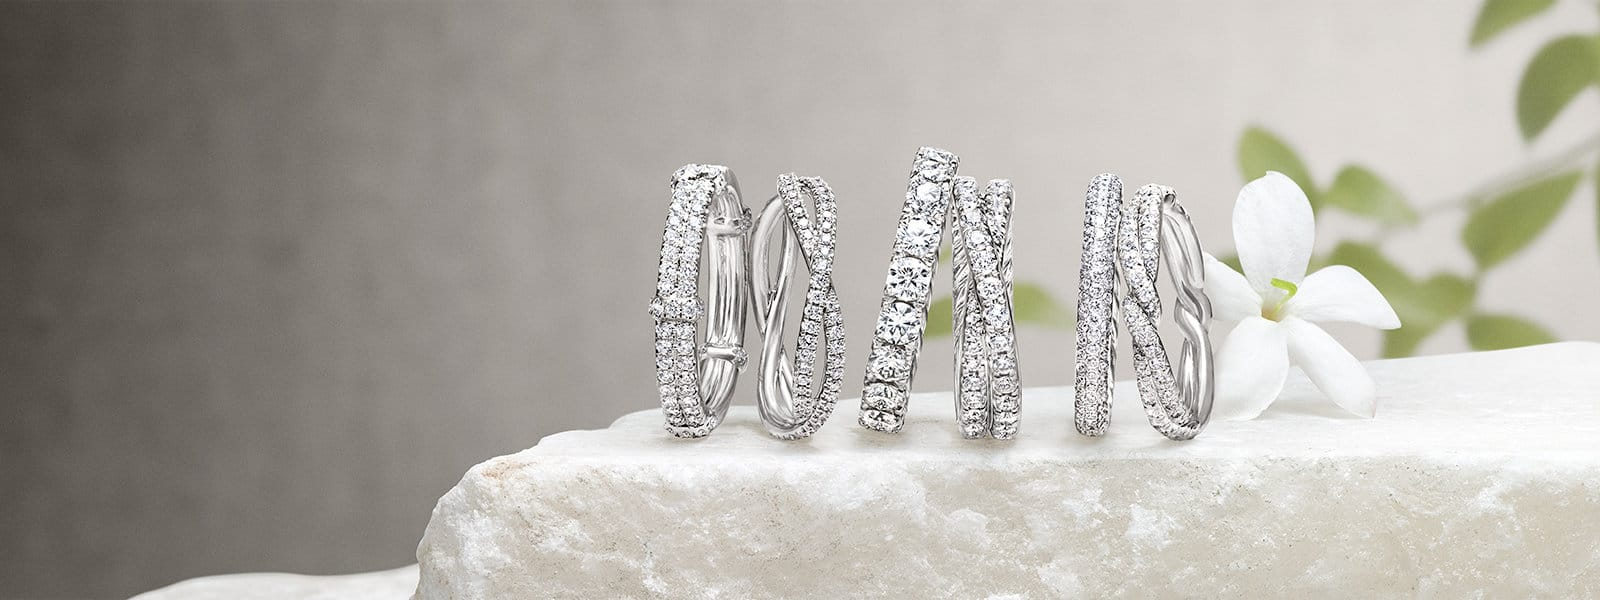 Wedding bands in platinum with diamonds on a stone with jasmine flowers.